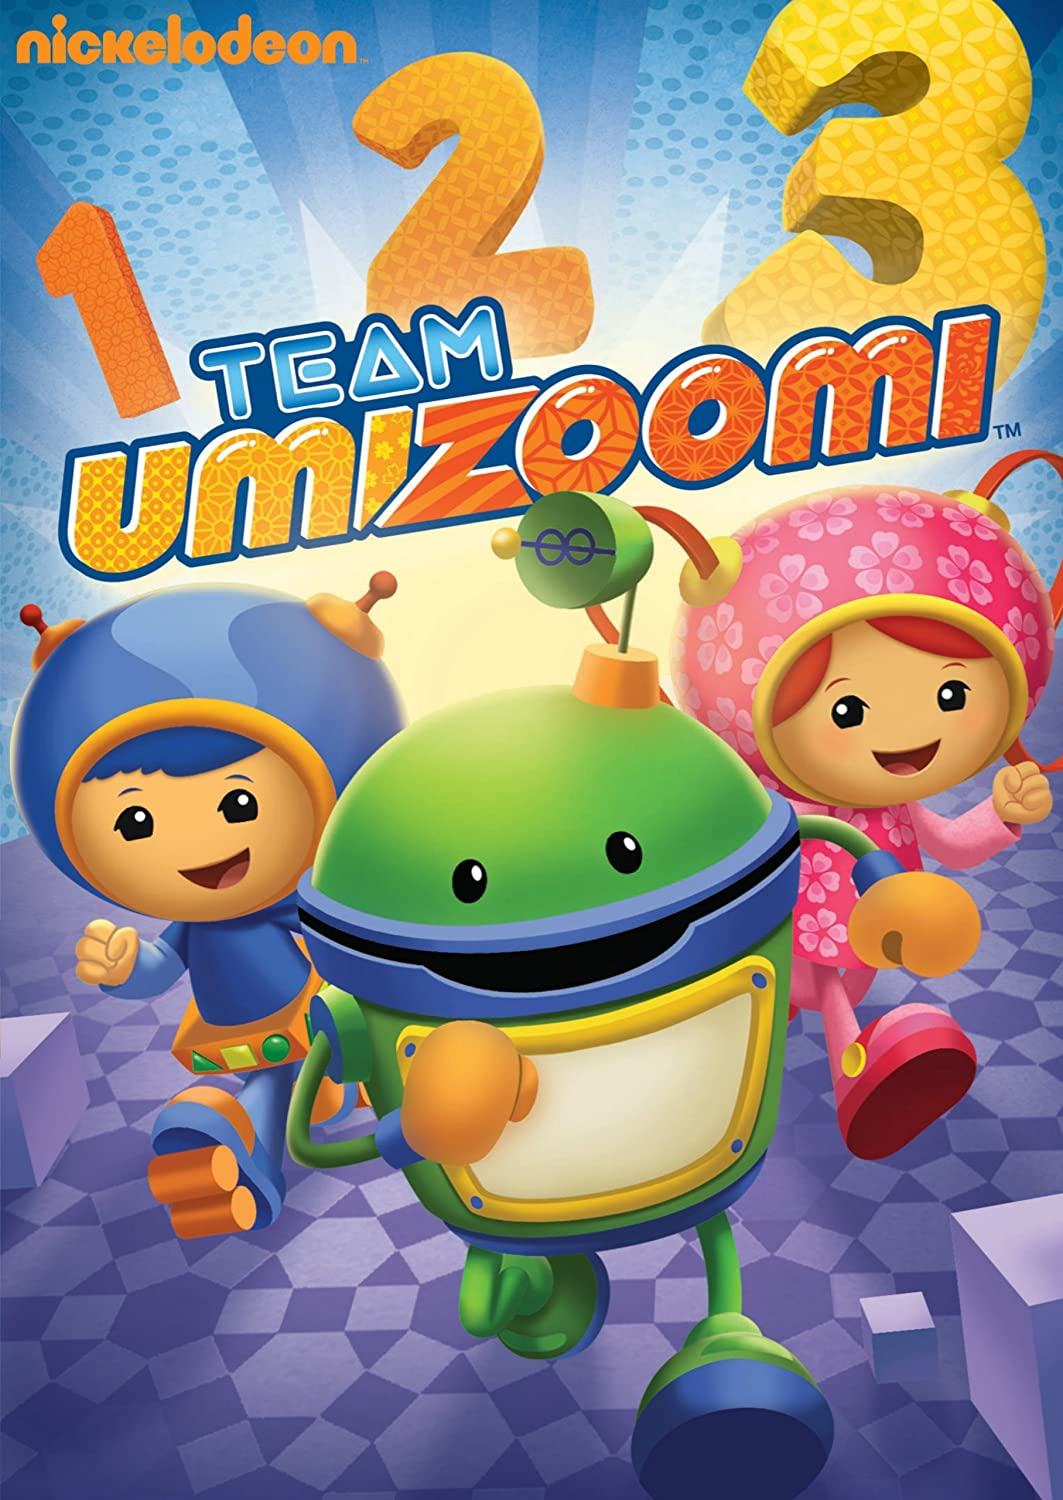 http://www.amazon.com/Team-Umizoomi-Donovan-Patton/dp/B004X1M4FG/